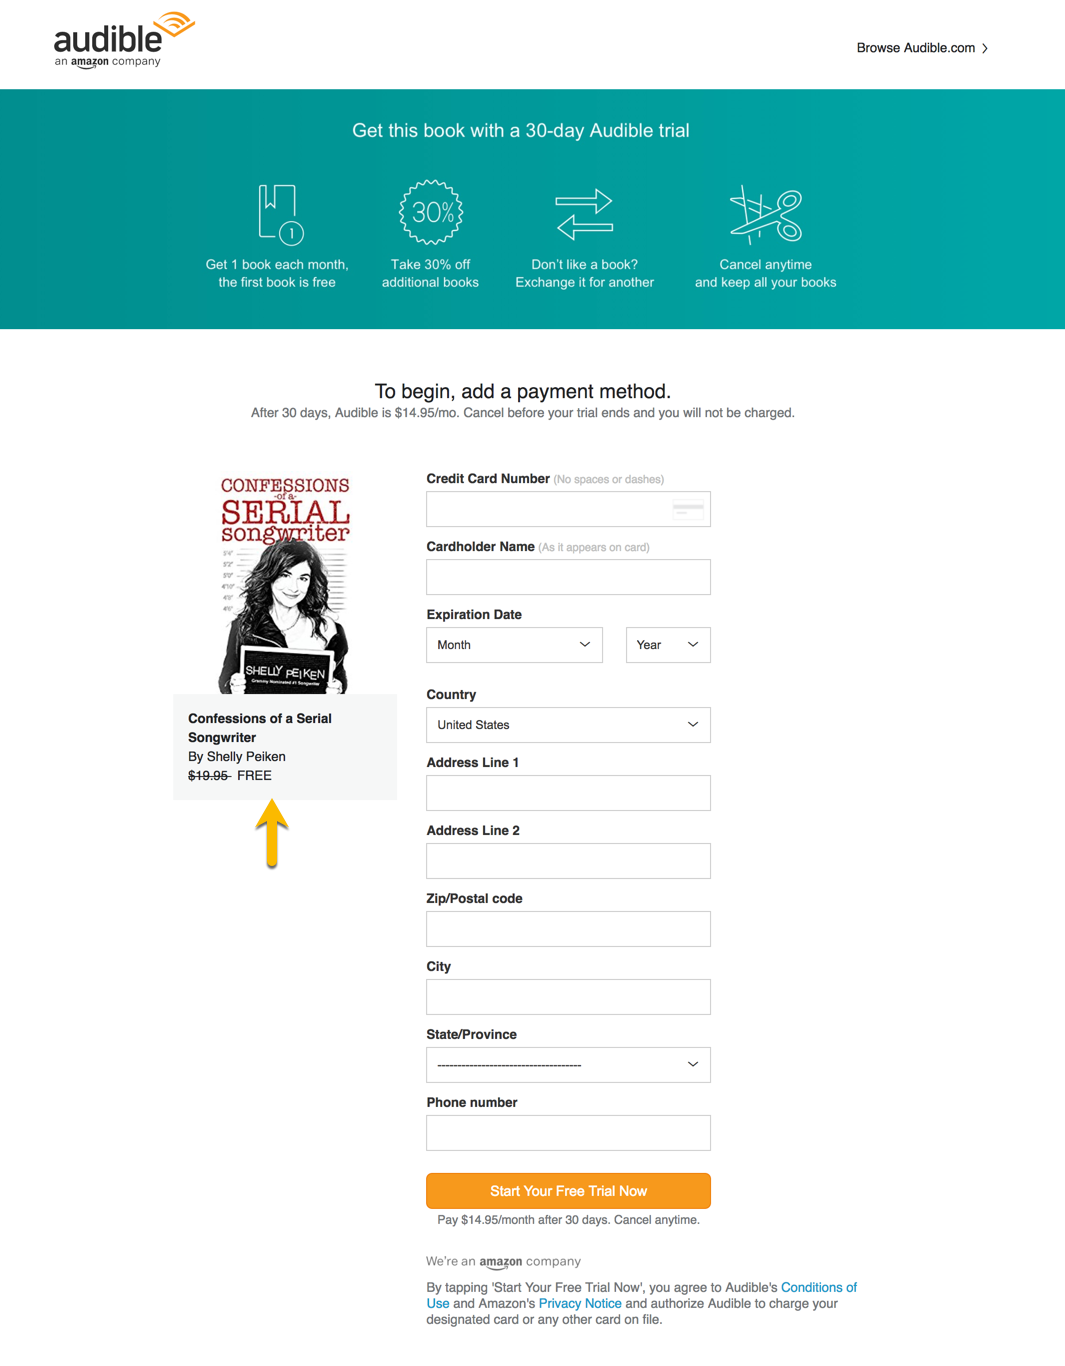 Audible Account Sharing creating your custom audible 30-day free trial link